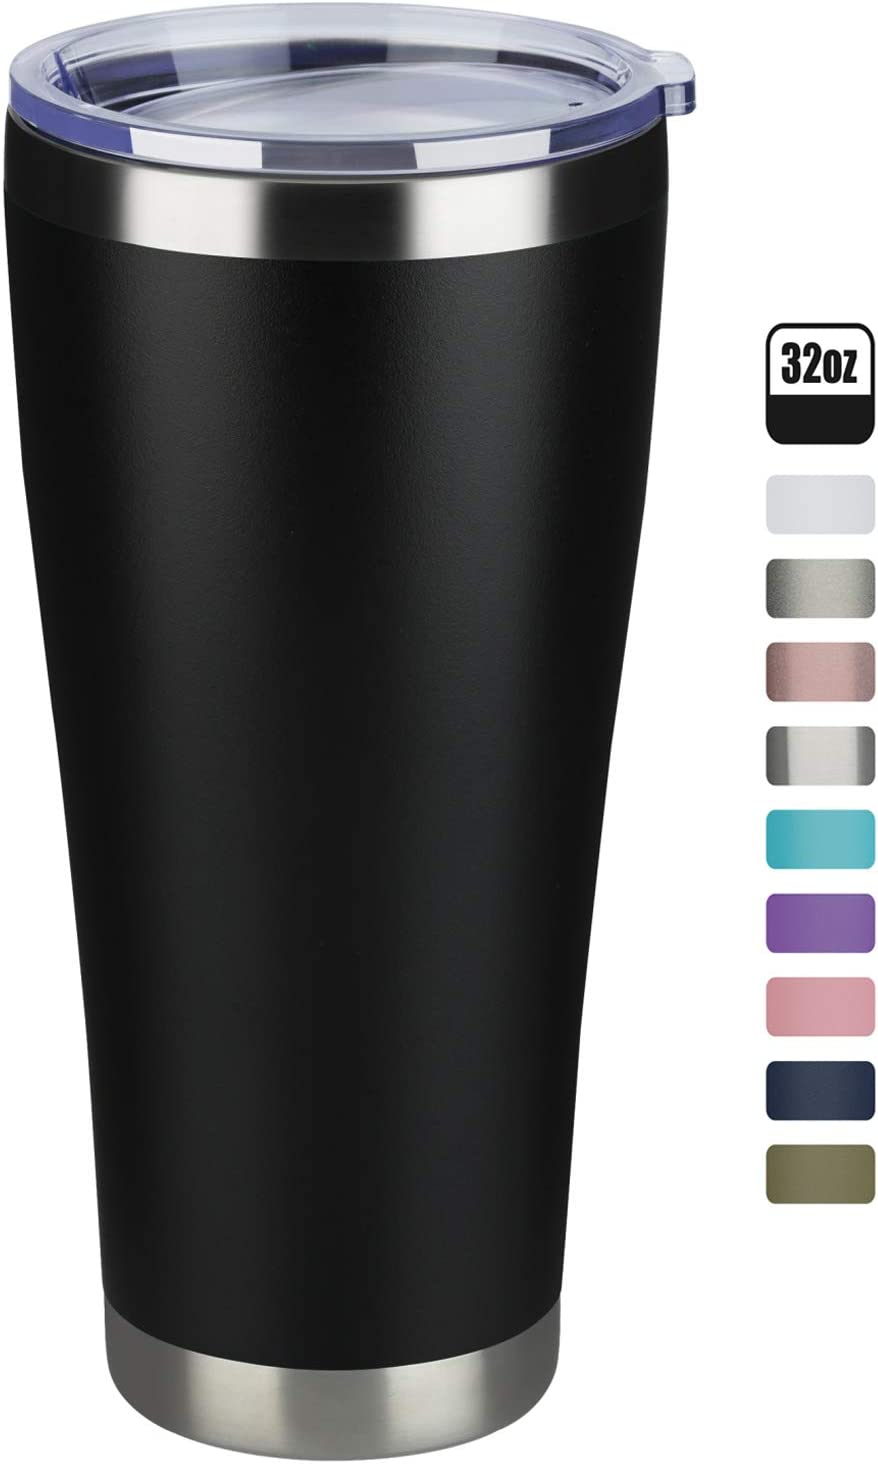 MEWAY 32oz Coffee Tumblers Vacuum Insulated Cups,Double Wall Stainless Steel Tumbler with Lid,Durable Powder Coated Thermos Coffee Mugs for Ice and Hot Drink (Black,1)